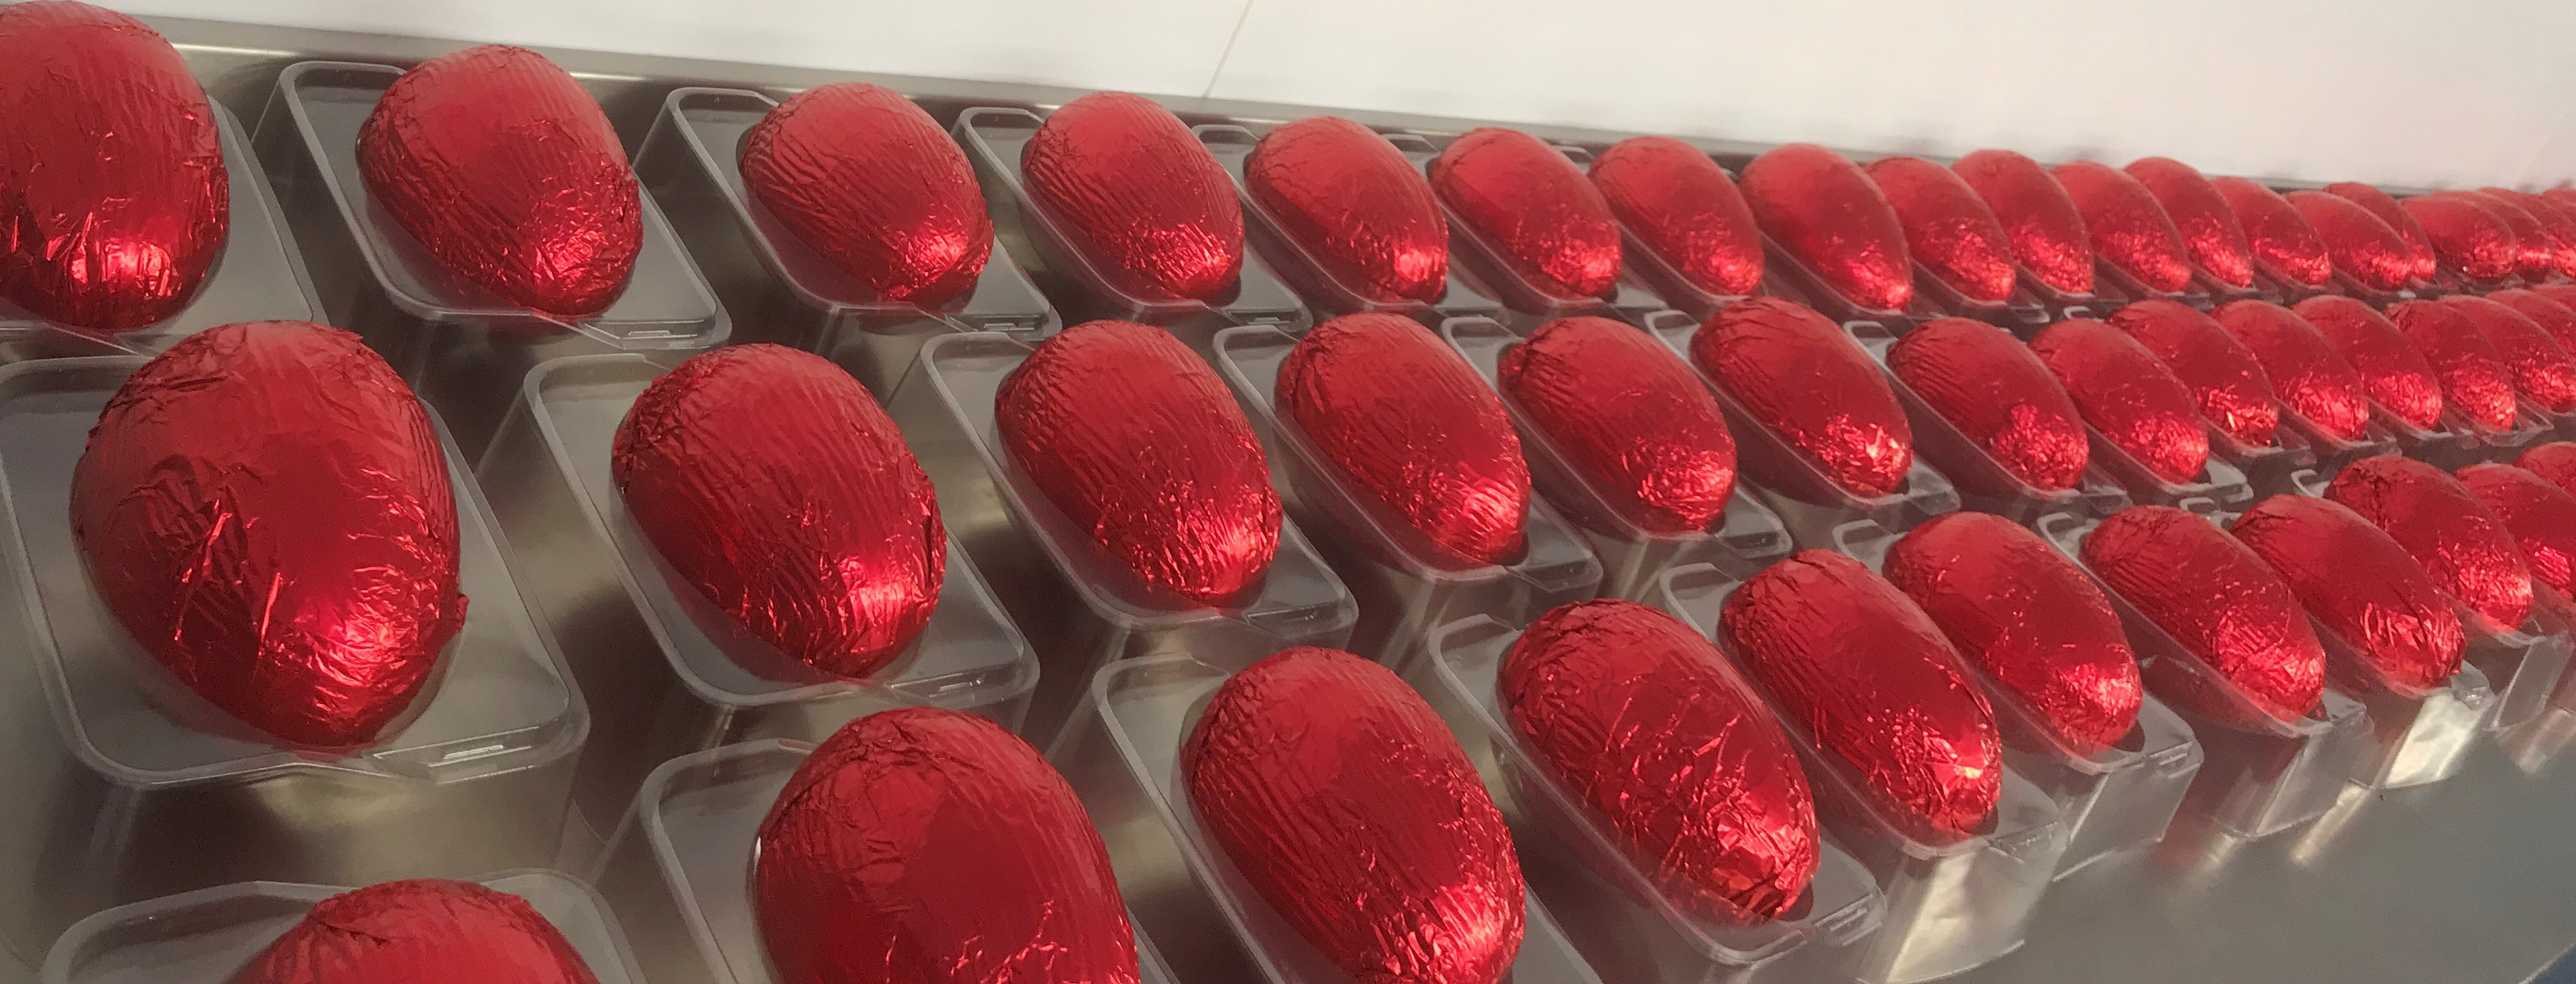 Foil wrapped chocolate easter eggs at Hames Chocolate Factory